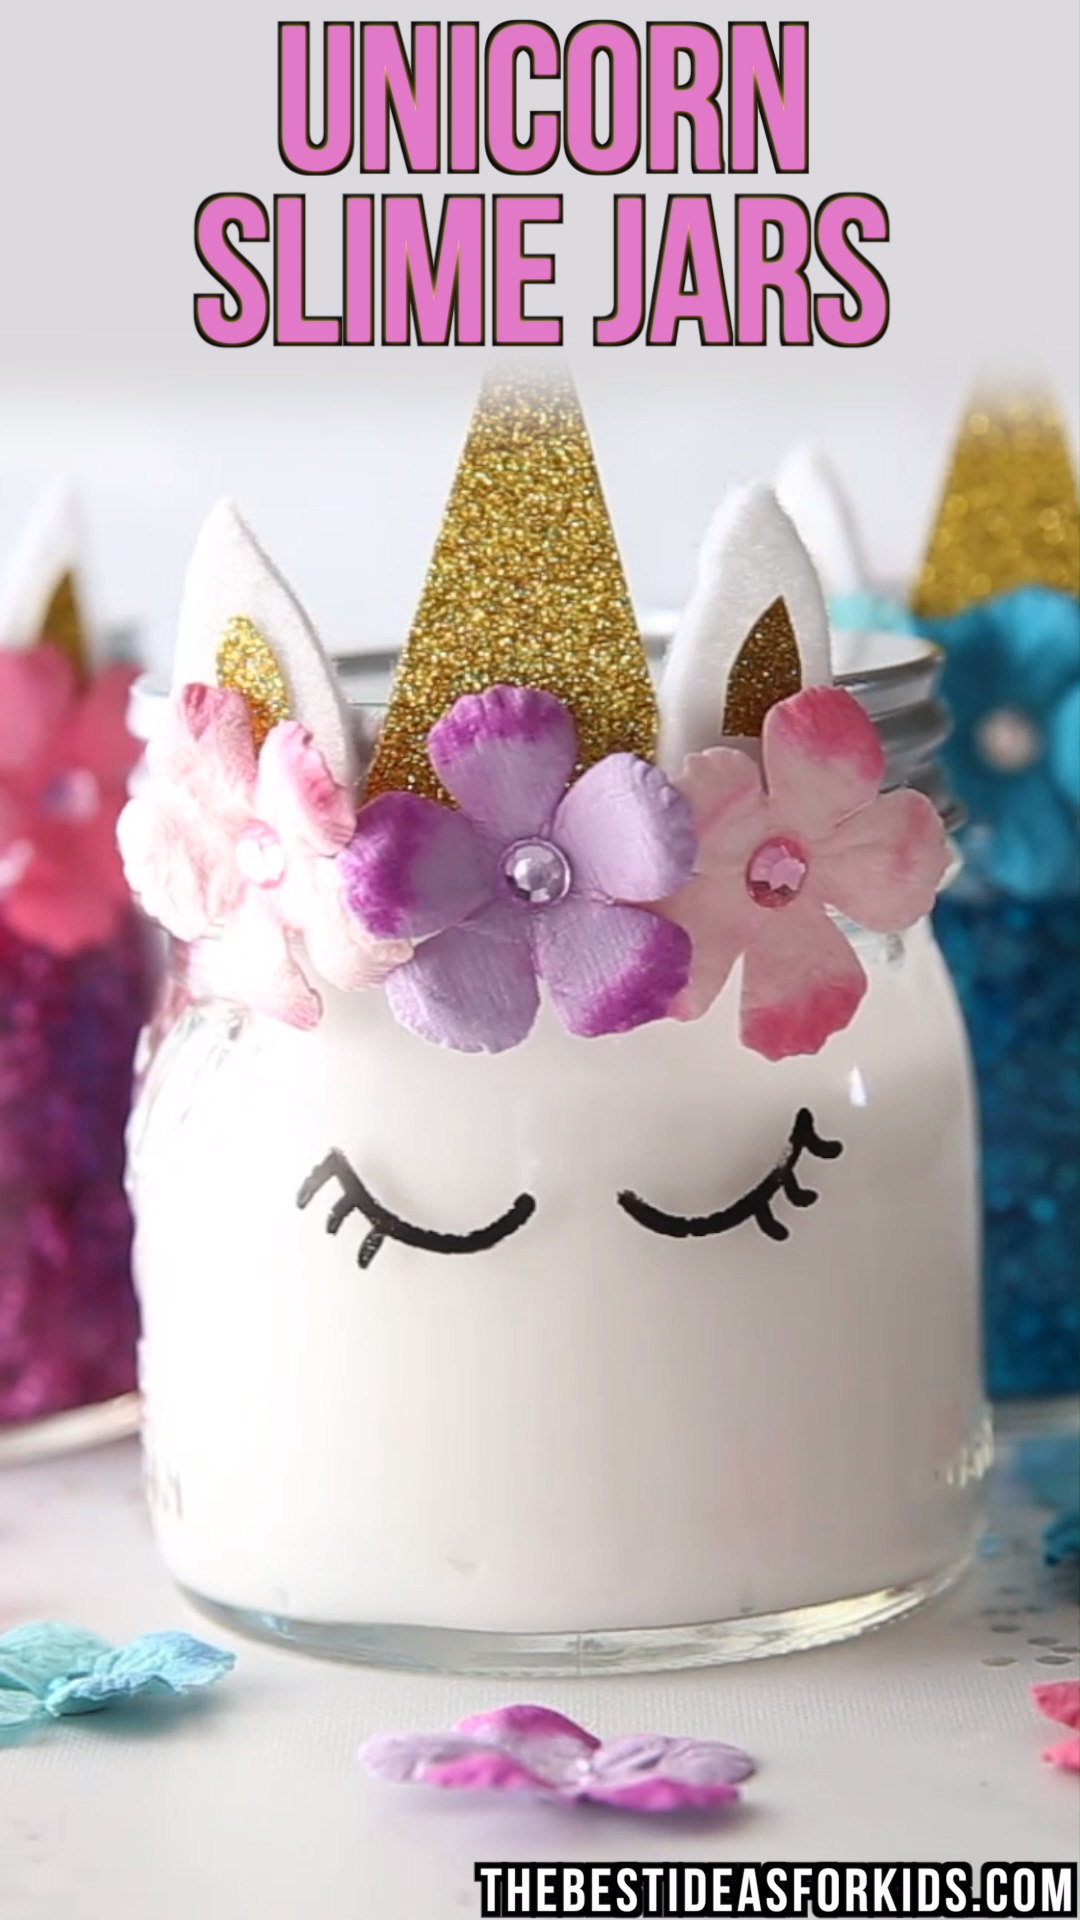 UNICORN SLIME JARS ?